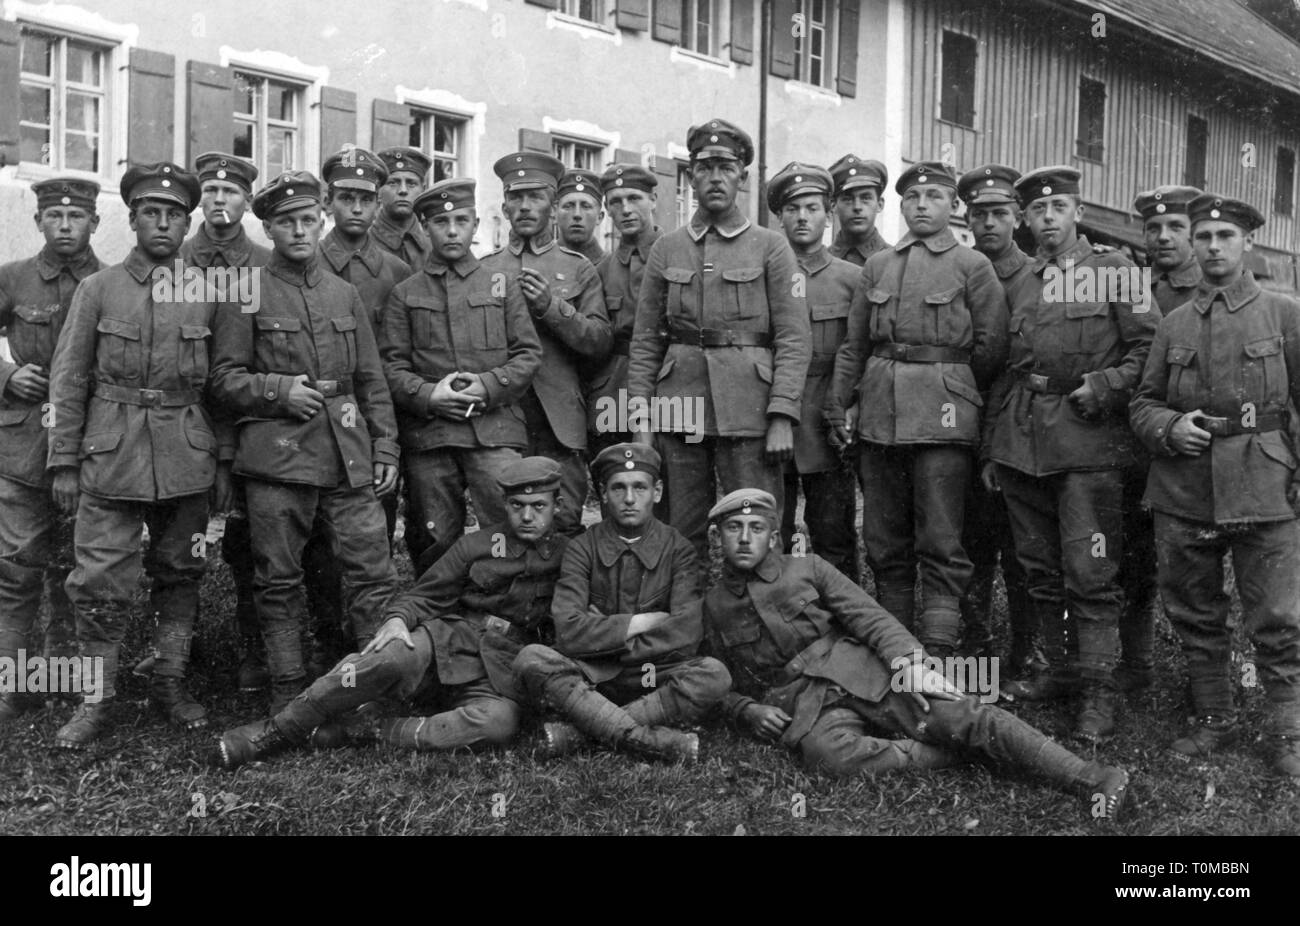 First World War / WWI, group German soldiers of the Bavarian Rifle Regiment 3 (Alpine Corps), August 1917, Additional-Rights-Clearance-Info-Not-Available Stock Photo